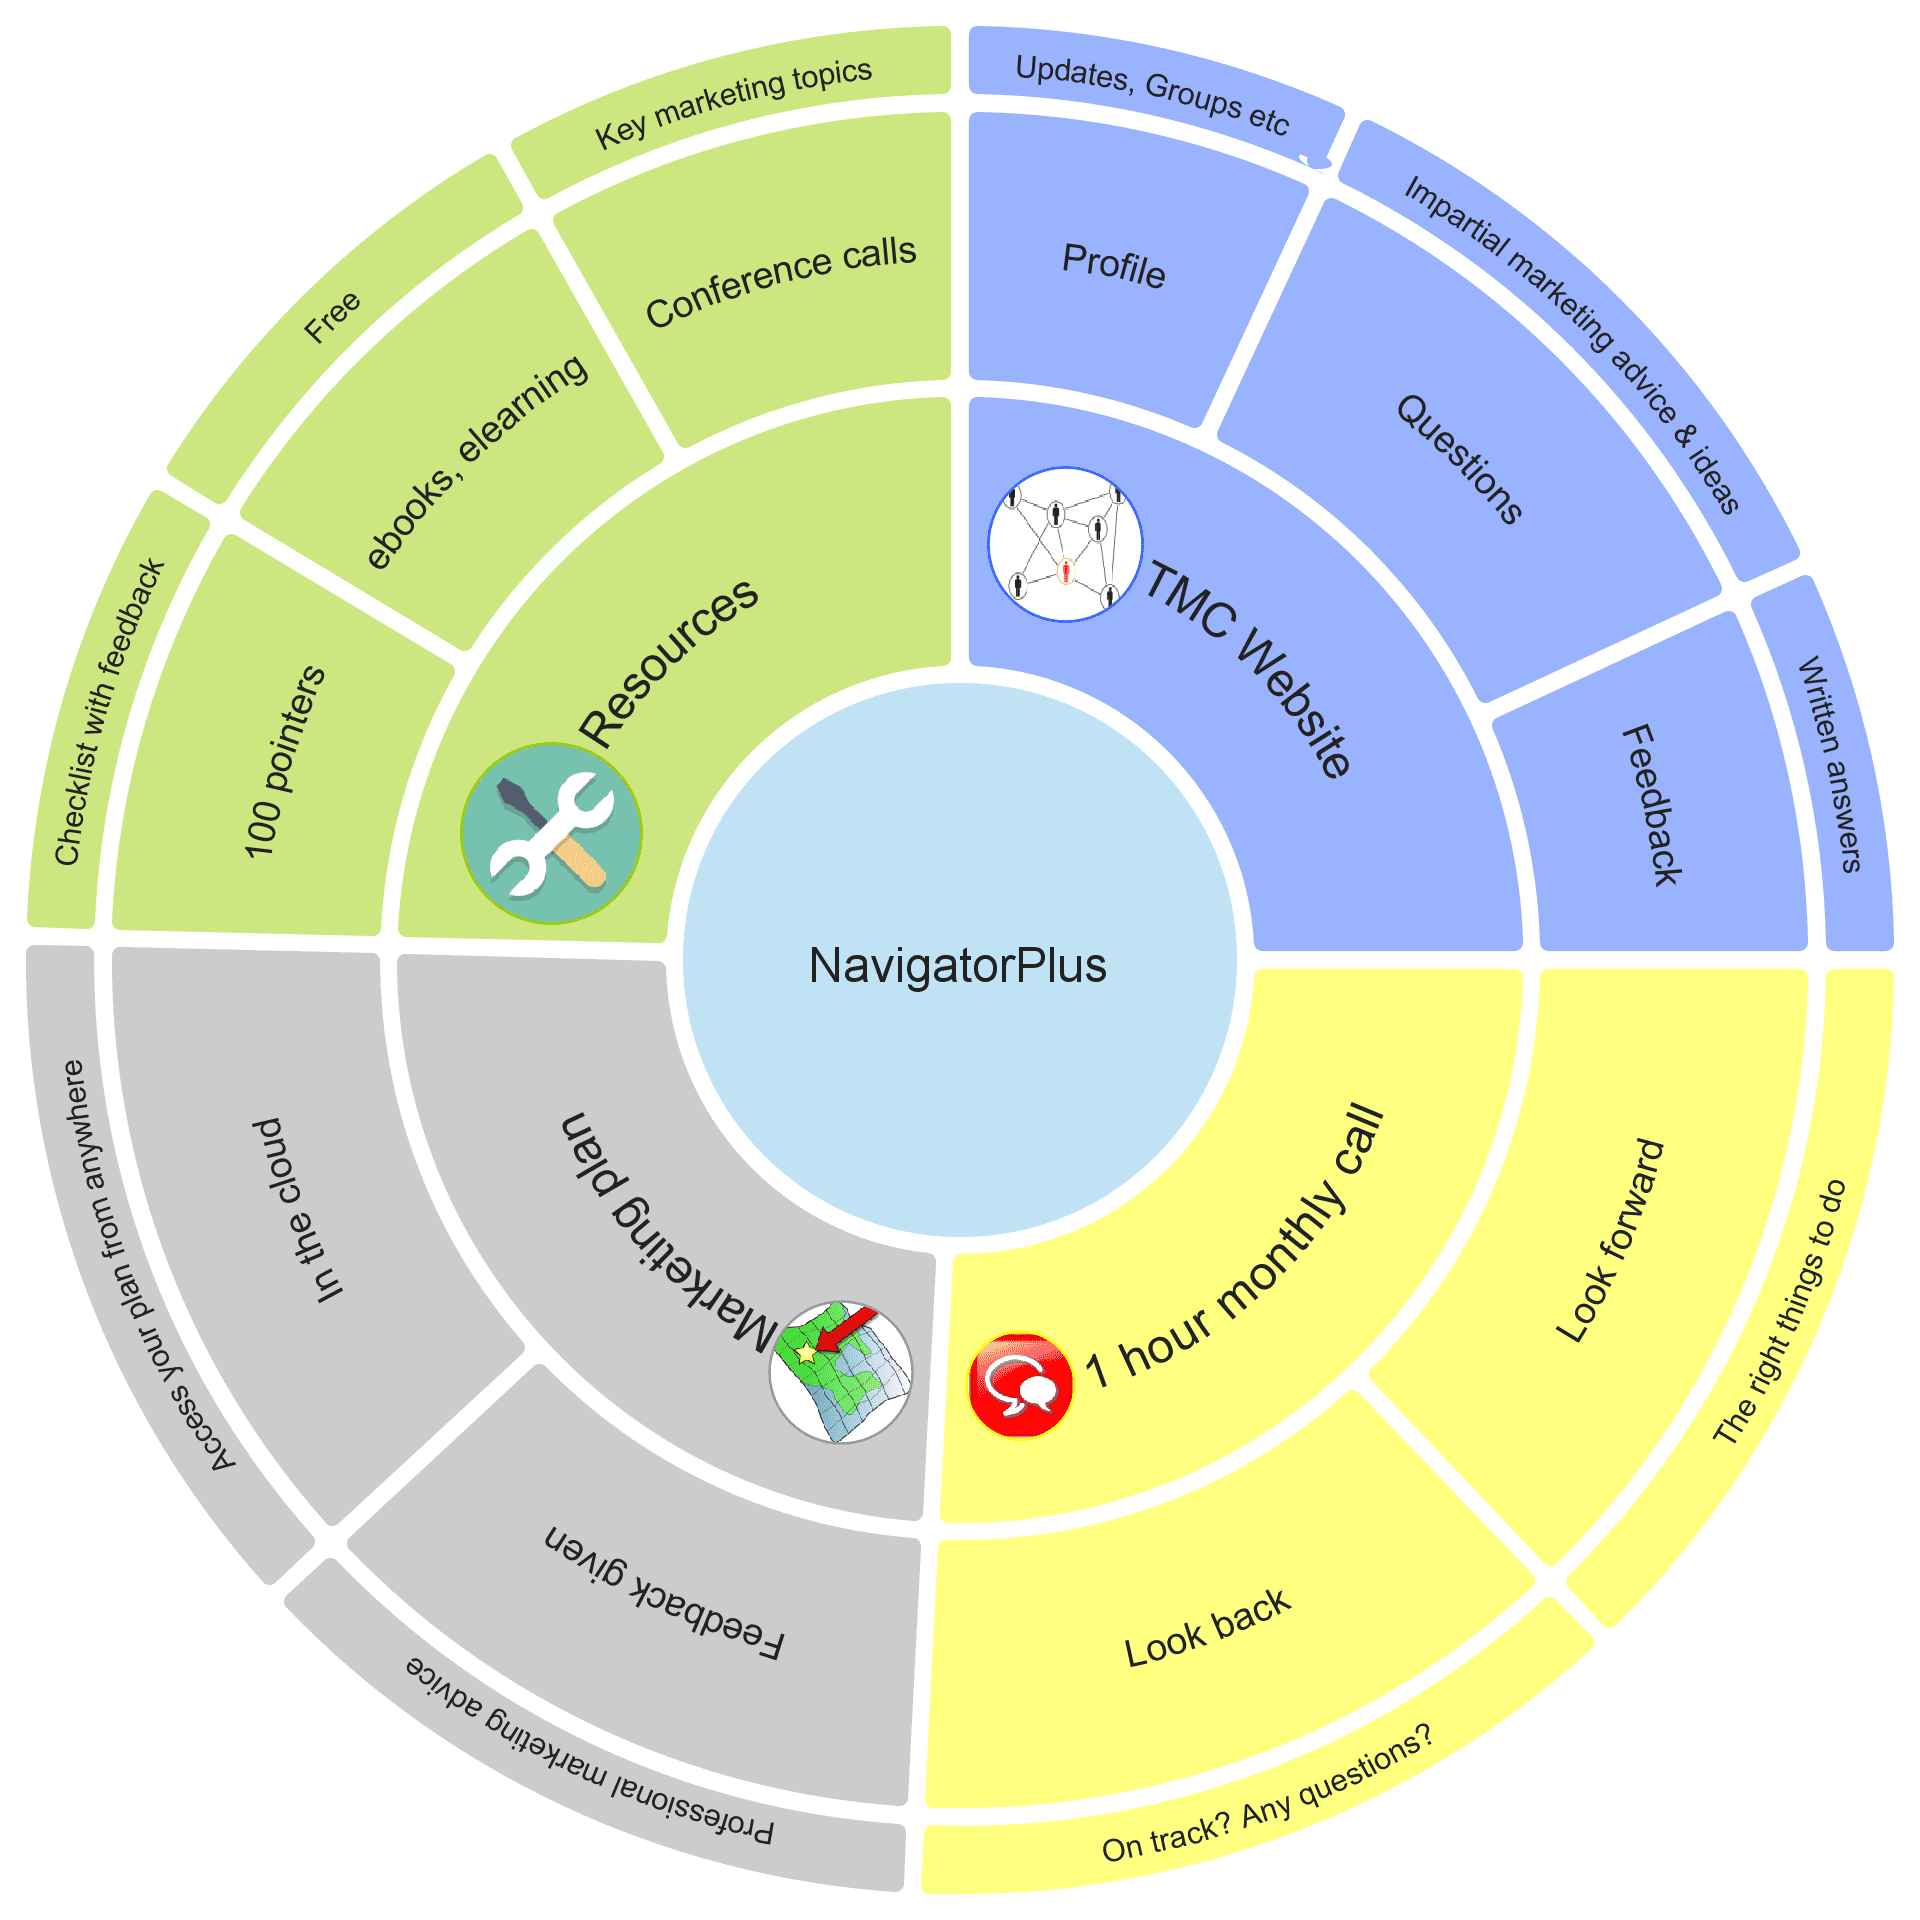 NavigatorPlus membership of The Marketing Compass January 2019